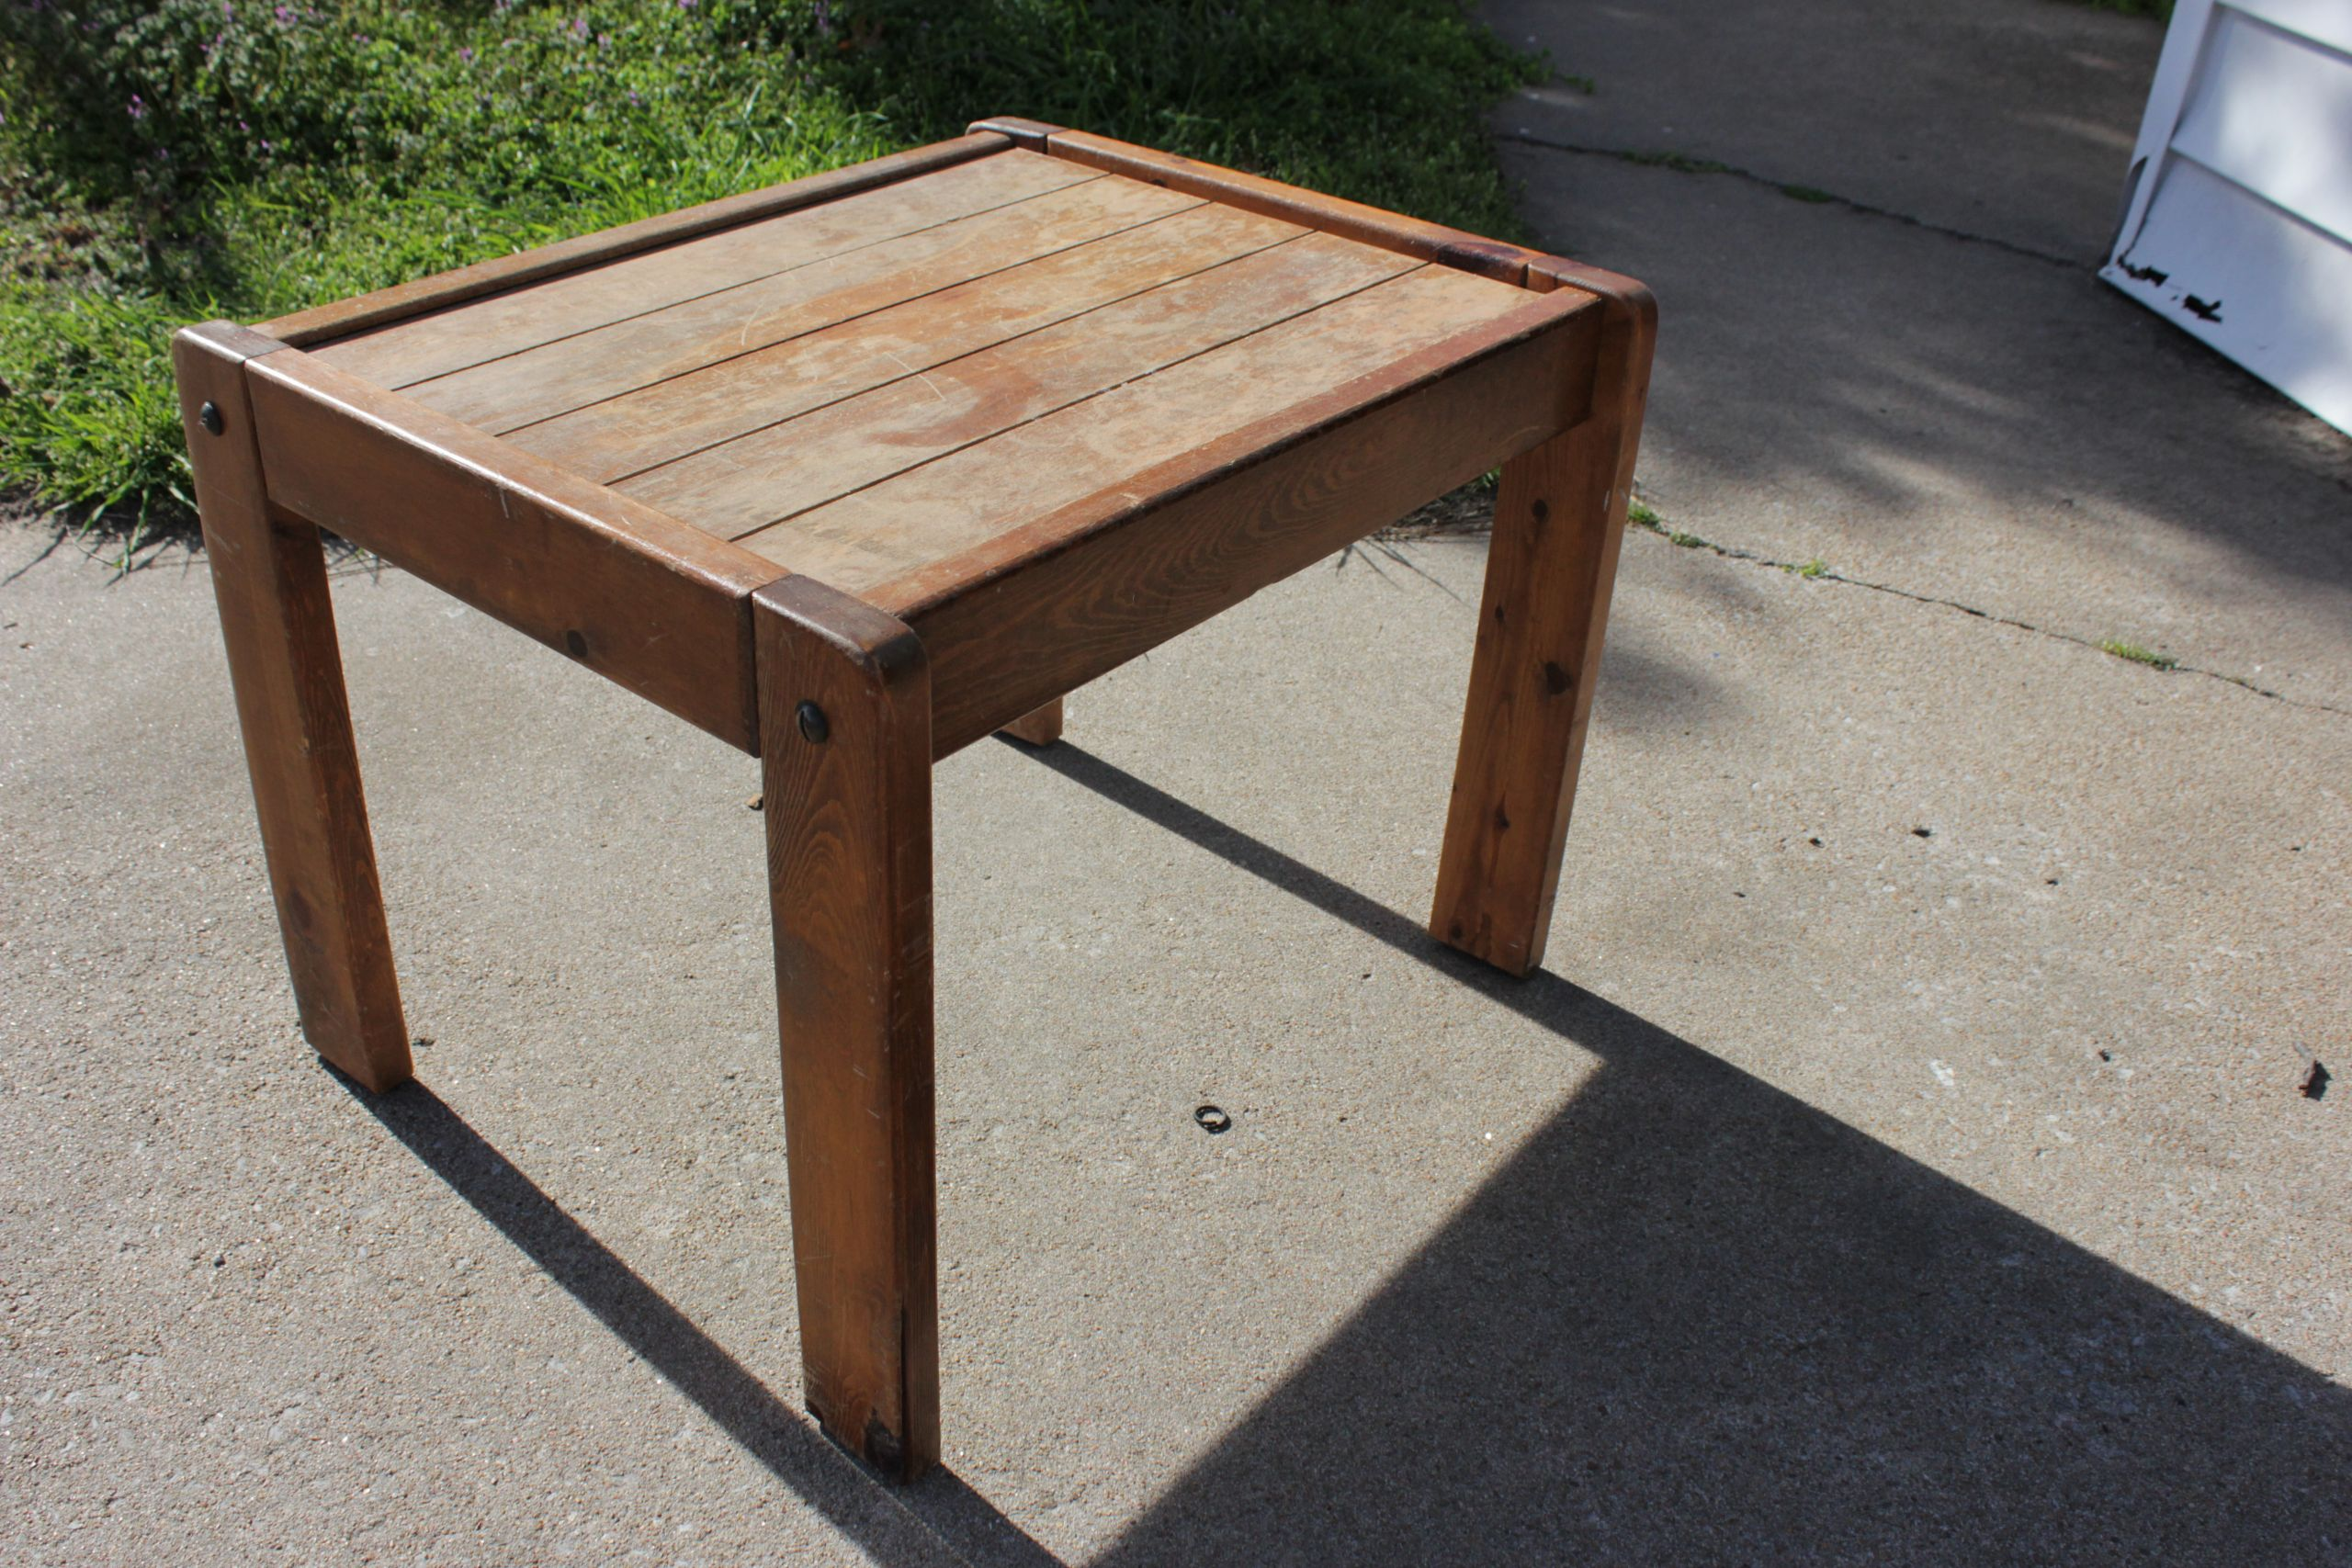 DIY Outdoor Wooden Table  DIY refinished end table drewanie